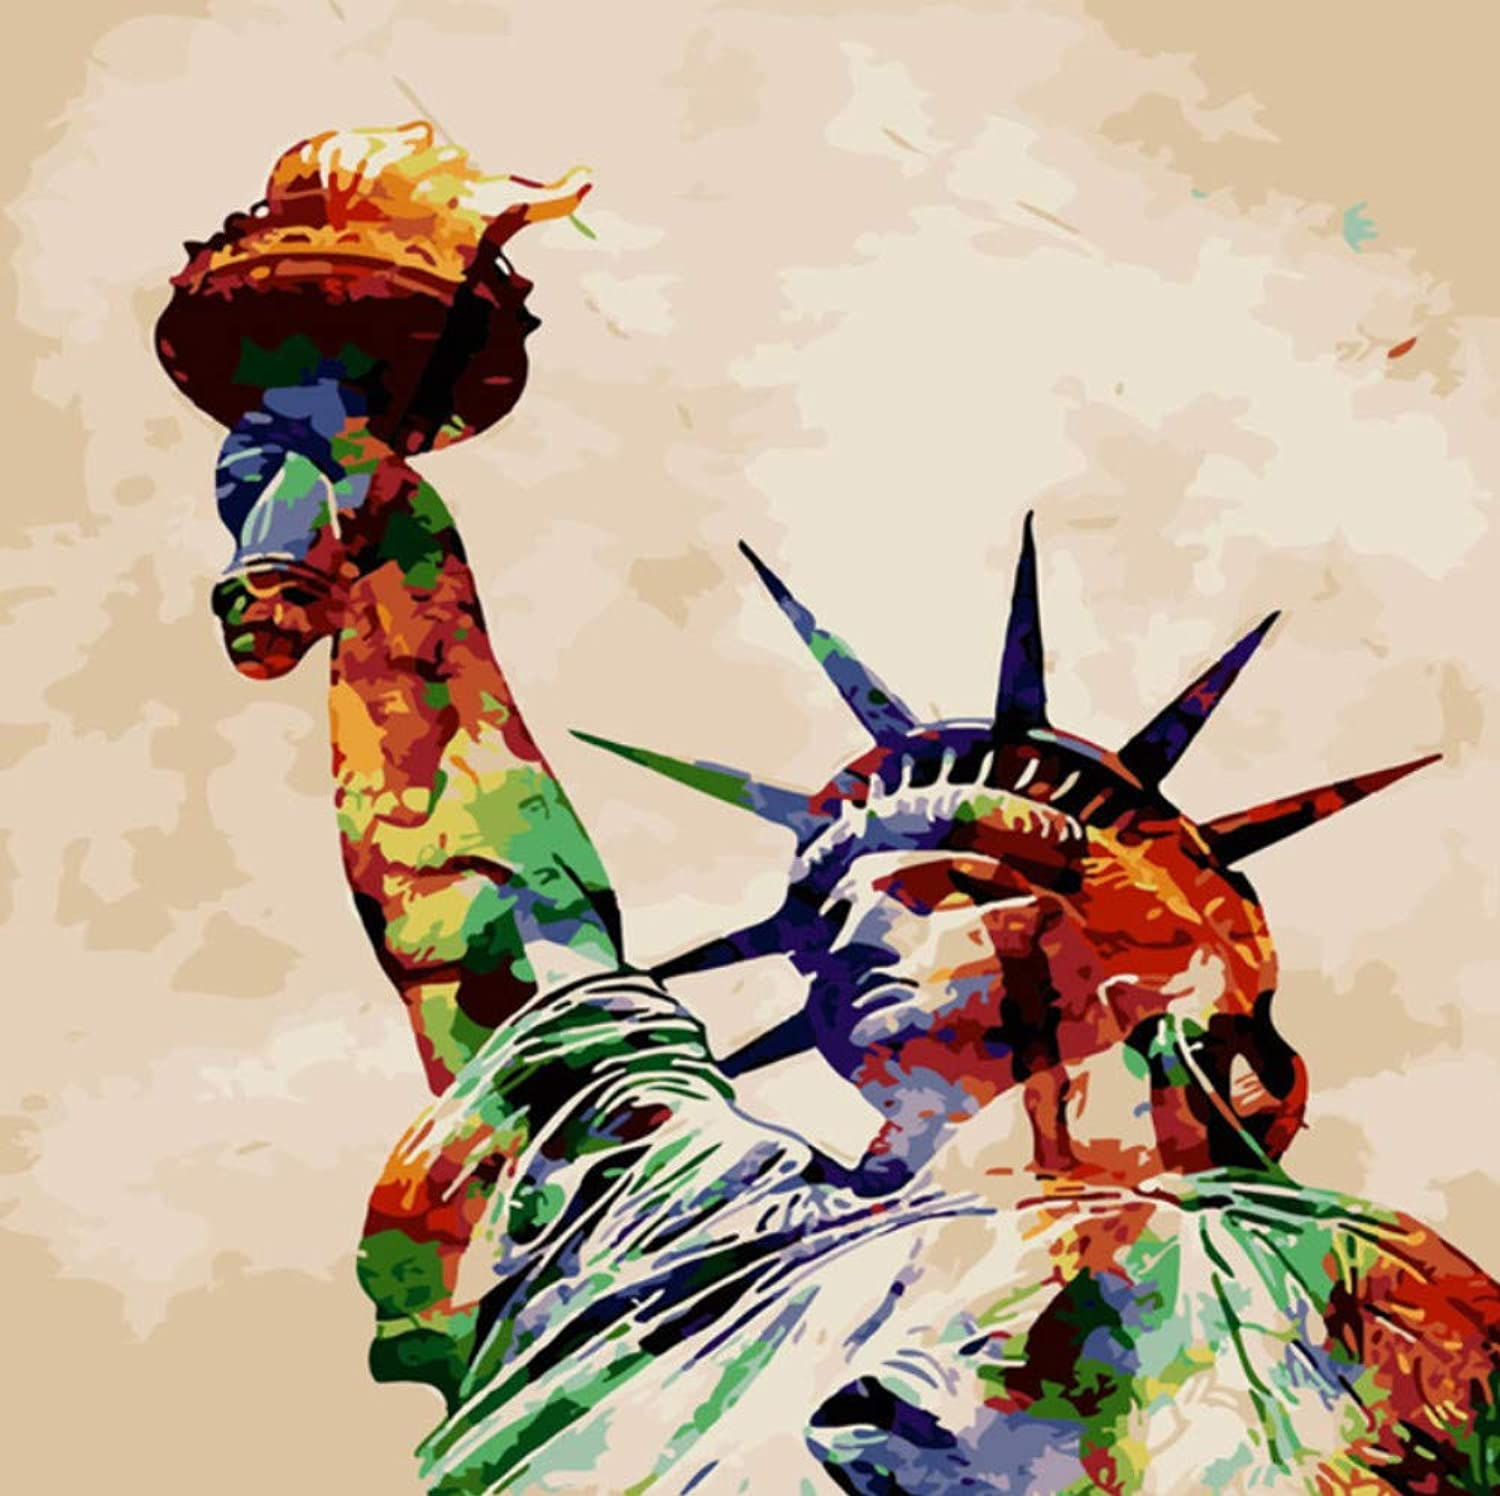 Statue of Liberty Oil Painting by Numbers DIY Abstract Digital Picture coloring by Numbers On Canvas Unique Gift Home Decor 50x60CM